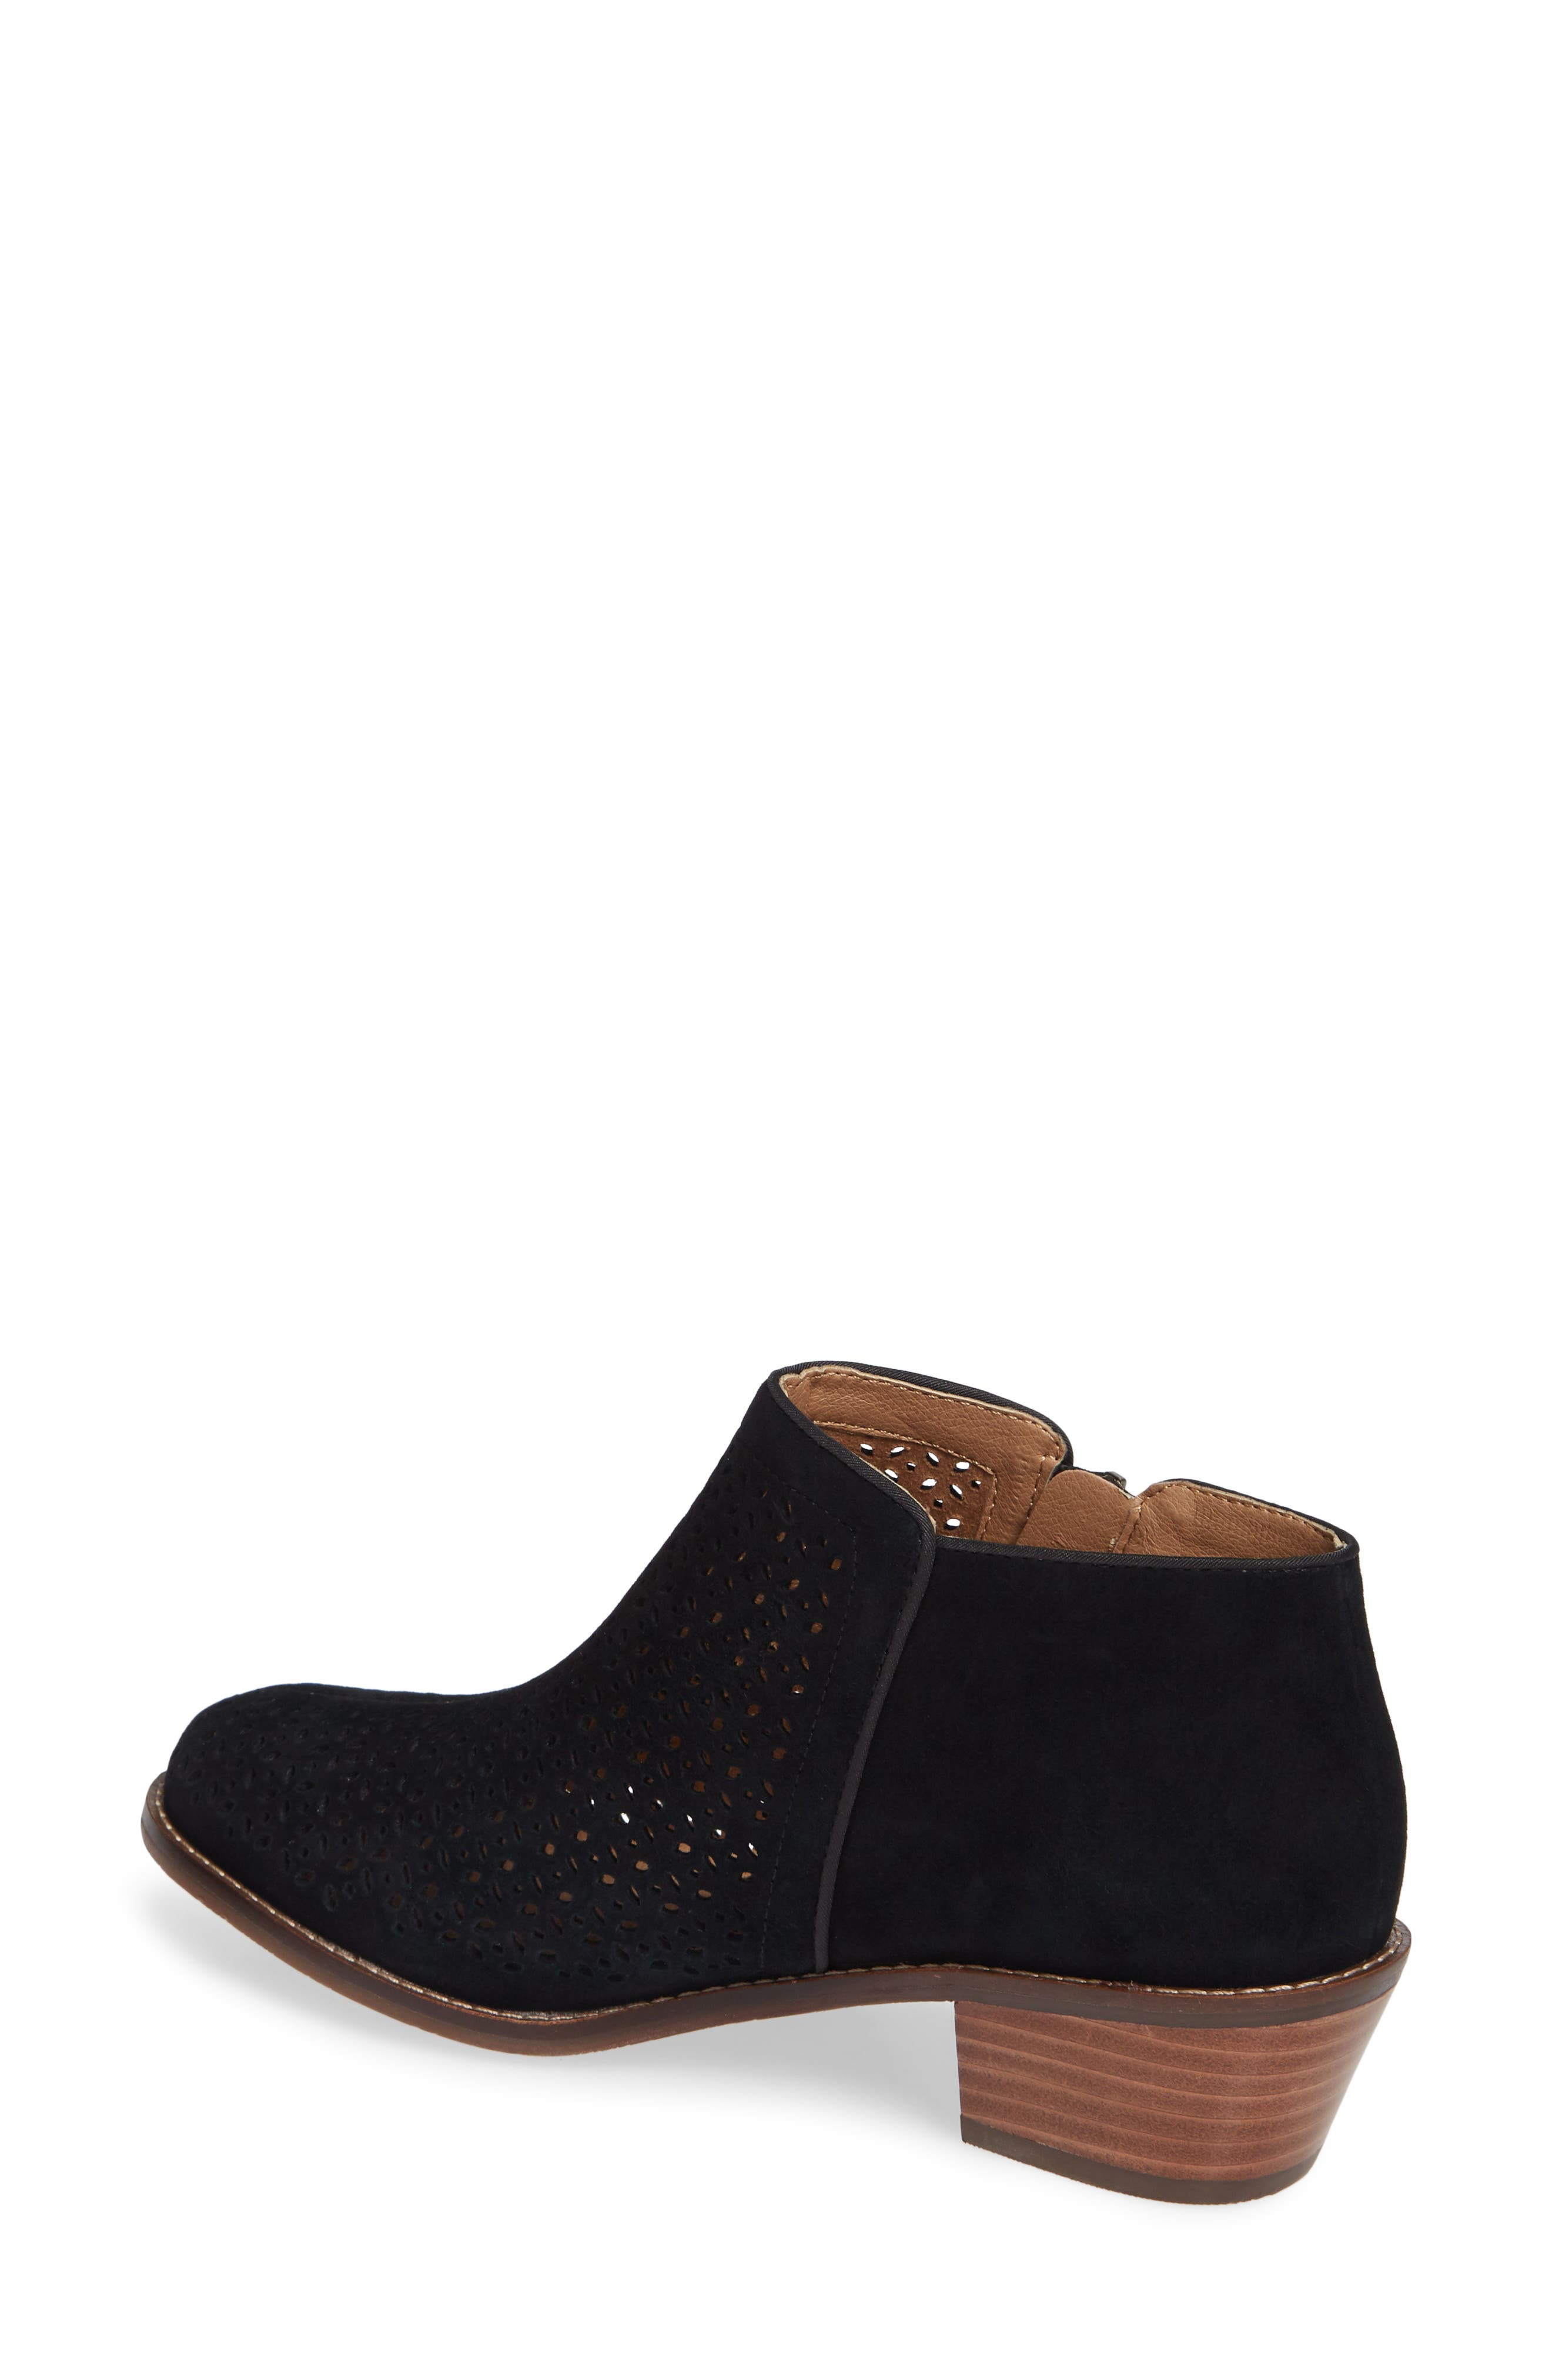 Daytona Perforated Bootie,                             Alternate thumbnail 2, color,                             BLACK SUEDE